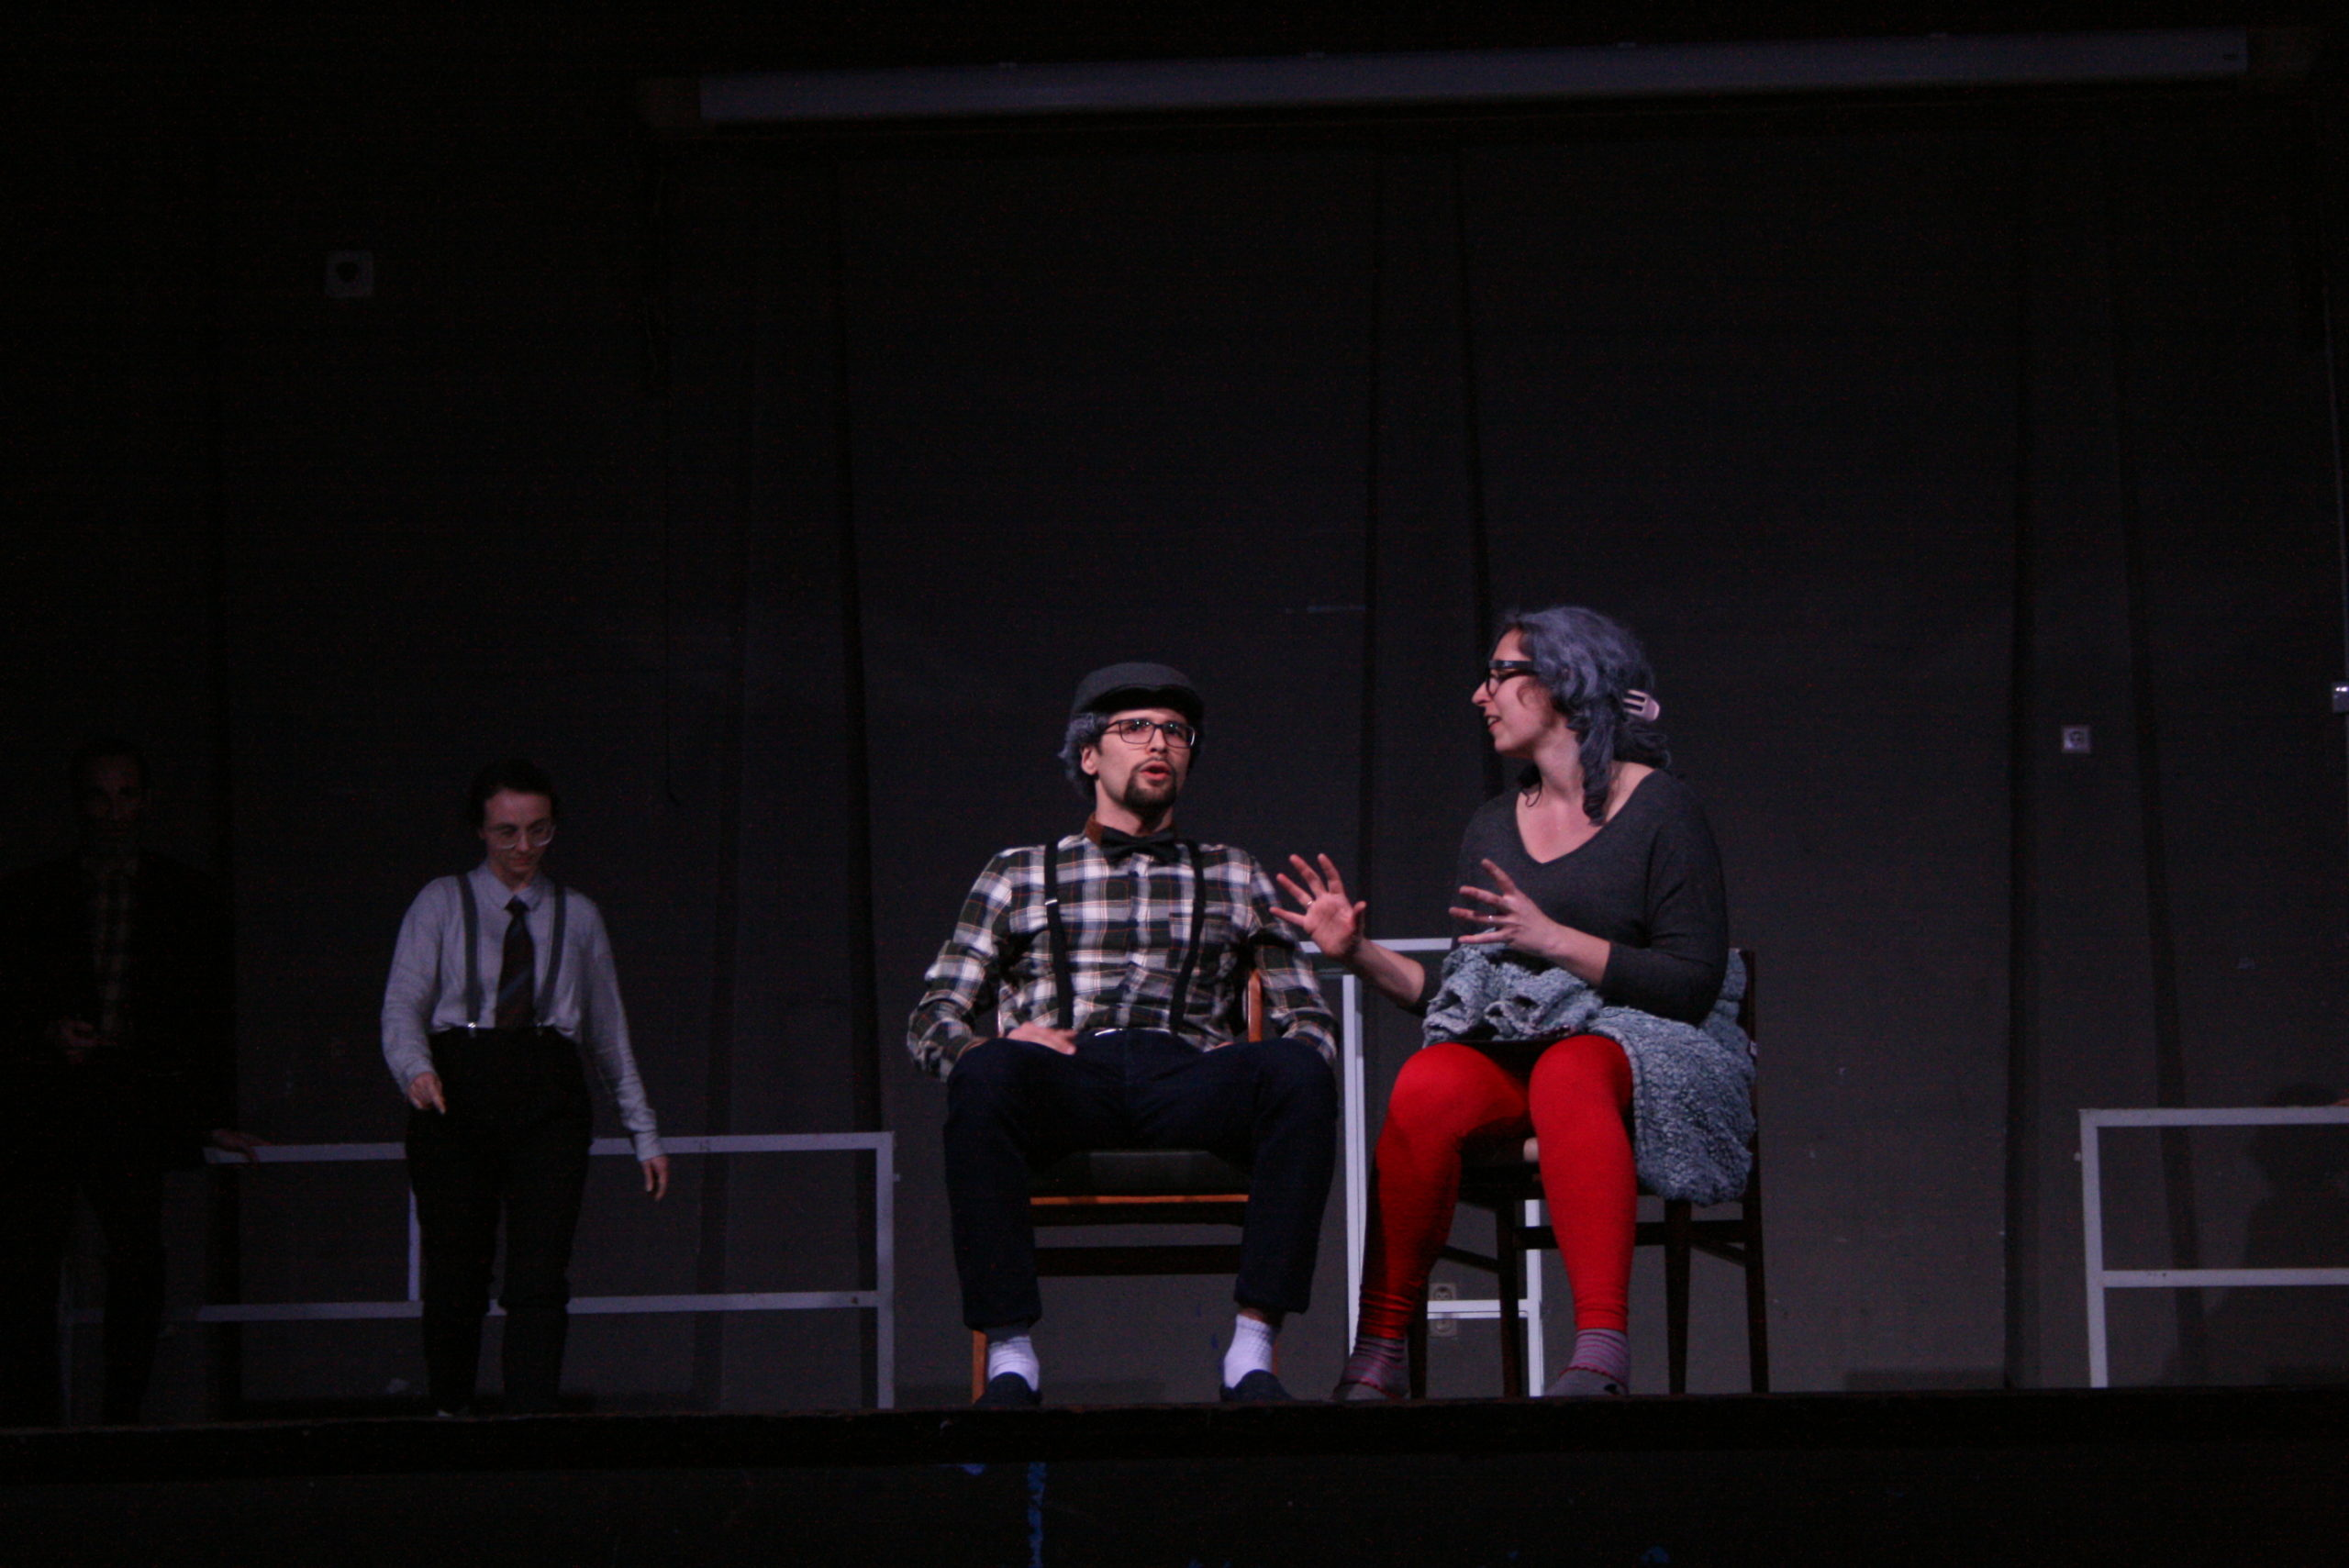 """Photo from the show """"The Chairs"""". A male and a female actor sit on chairs, talking. He looks over the audience and she looks at him, her arms open like holding a ball"""